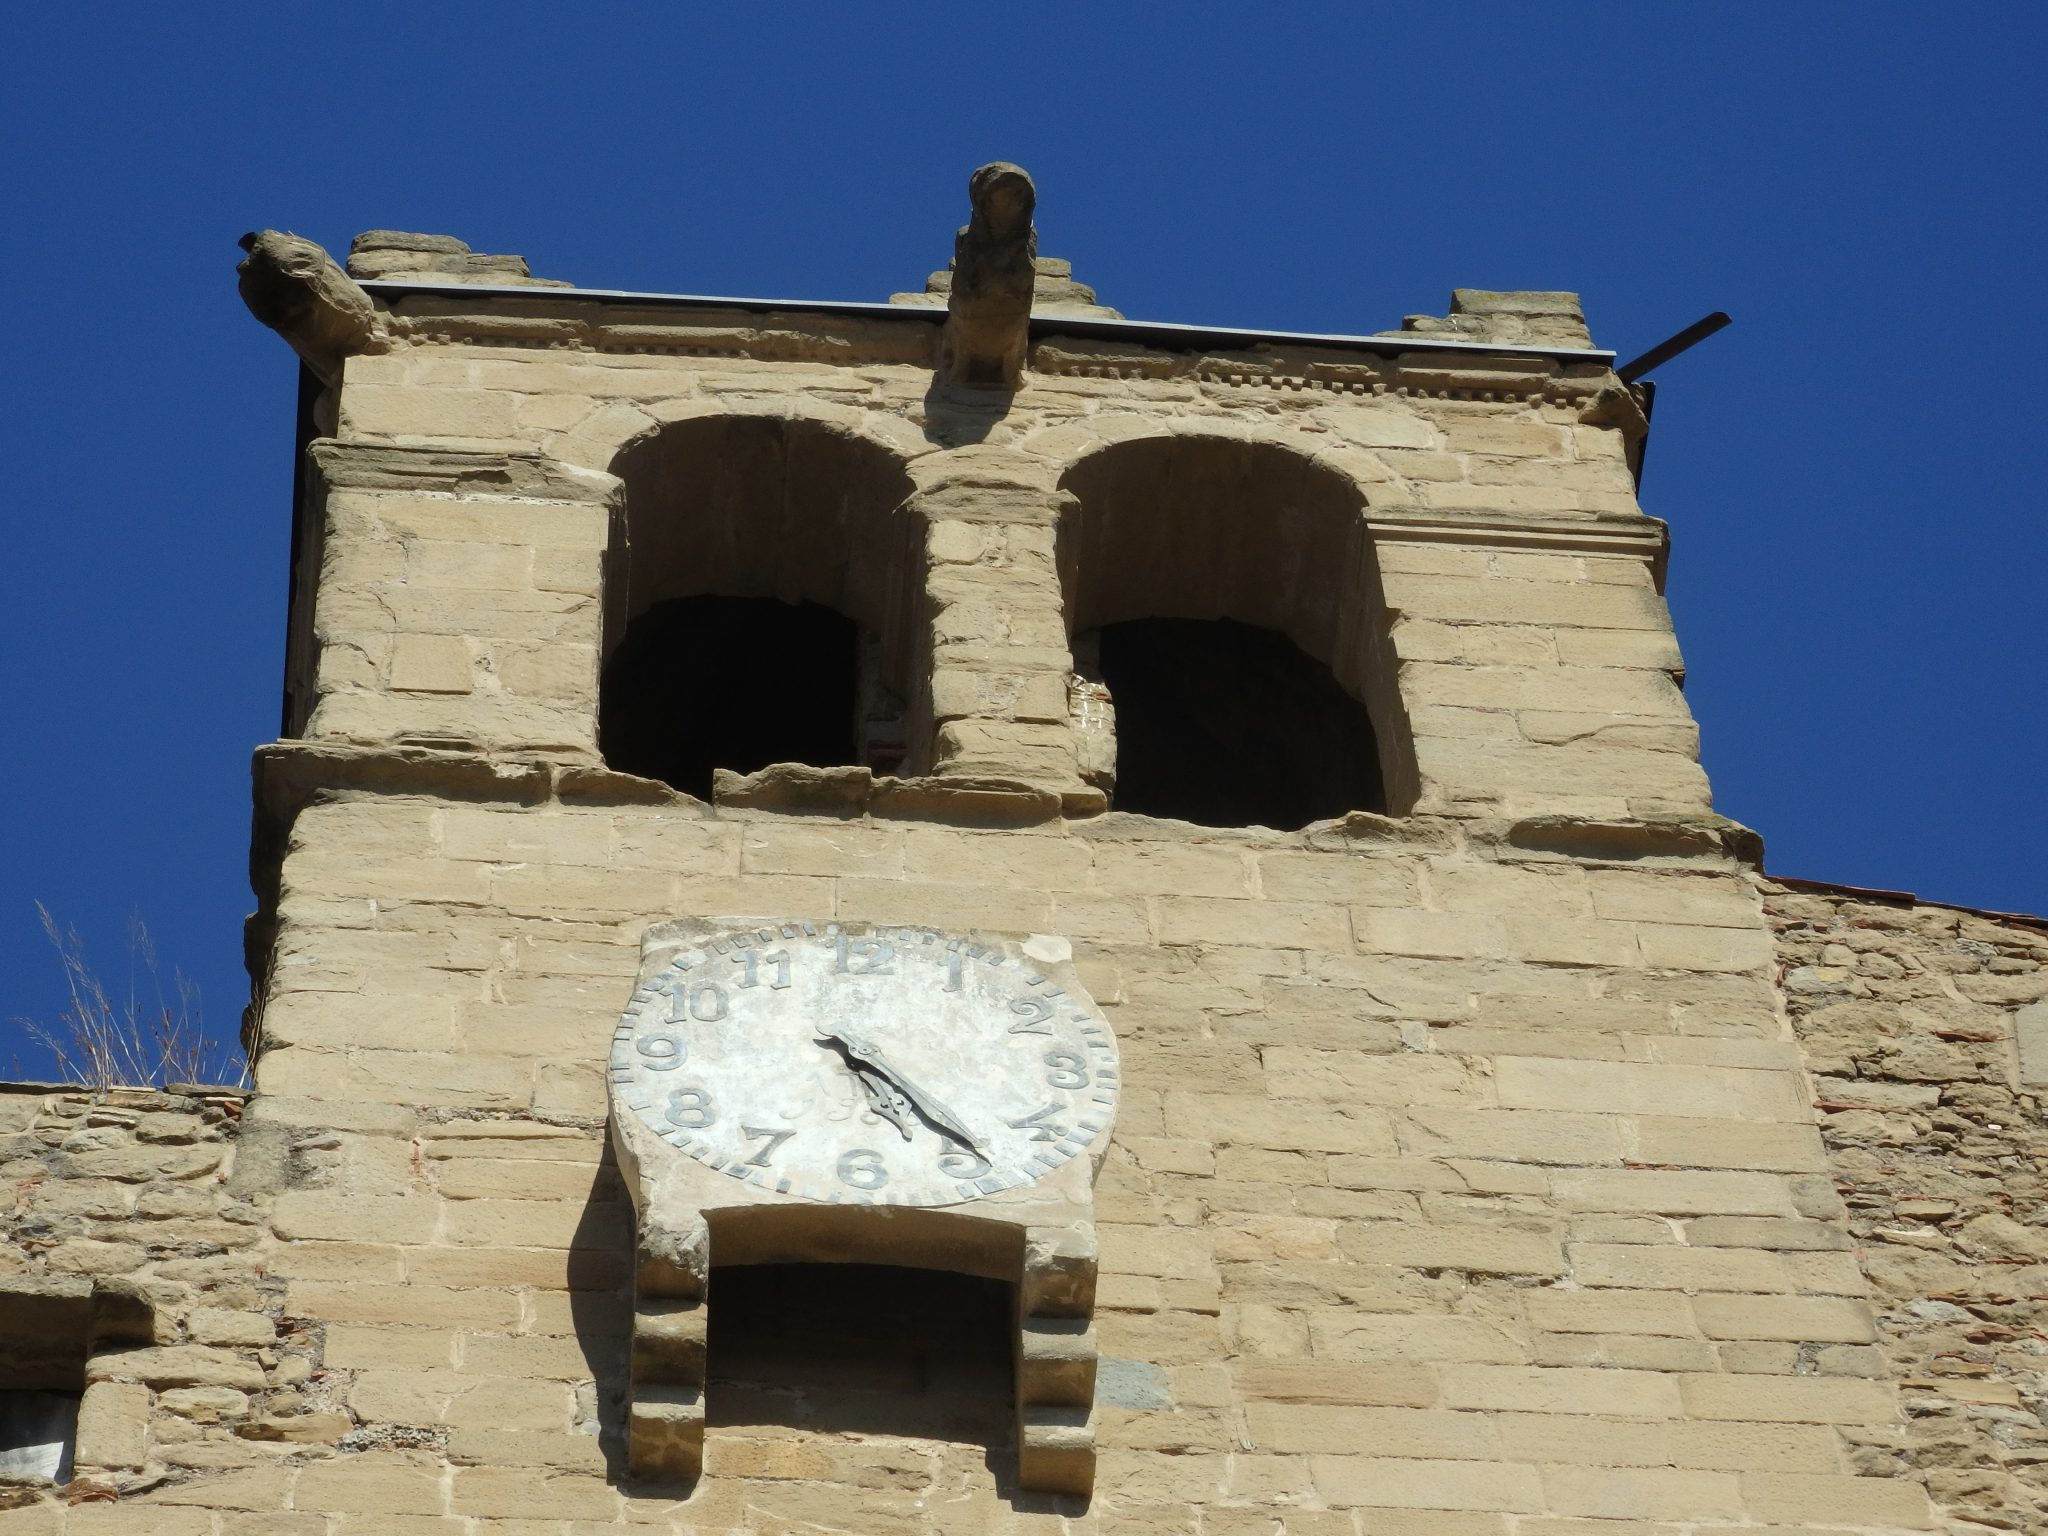 a clocktower in Madremanya, Baix Emporda, Spain